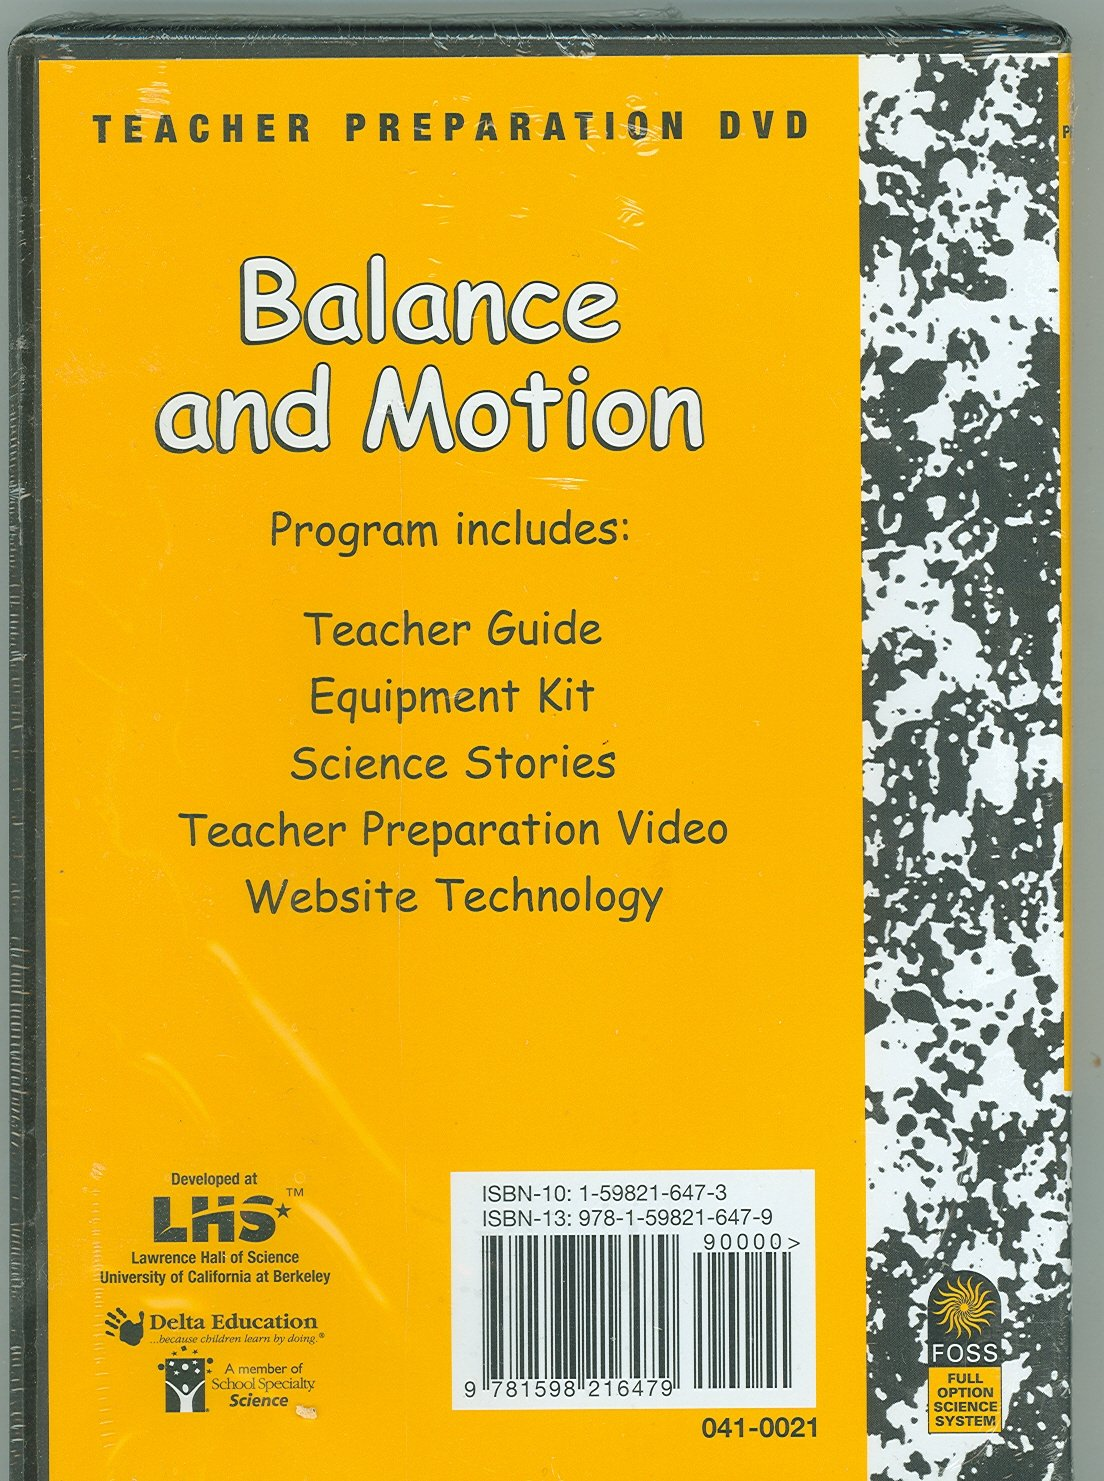 amazon com full option science system foss balance and motion rh amazon com Balance and Motion Experiments 2nd Grade Balance and Motion